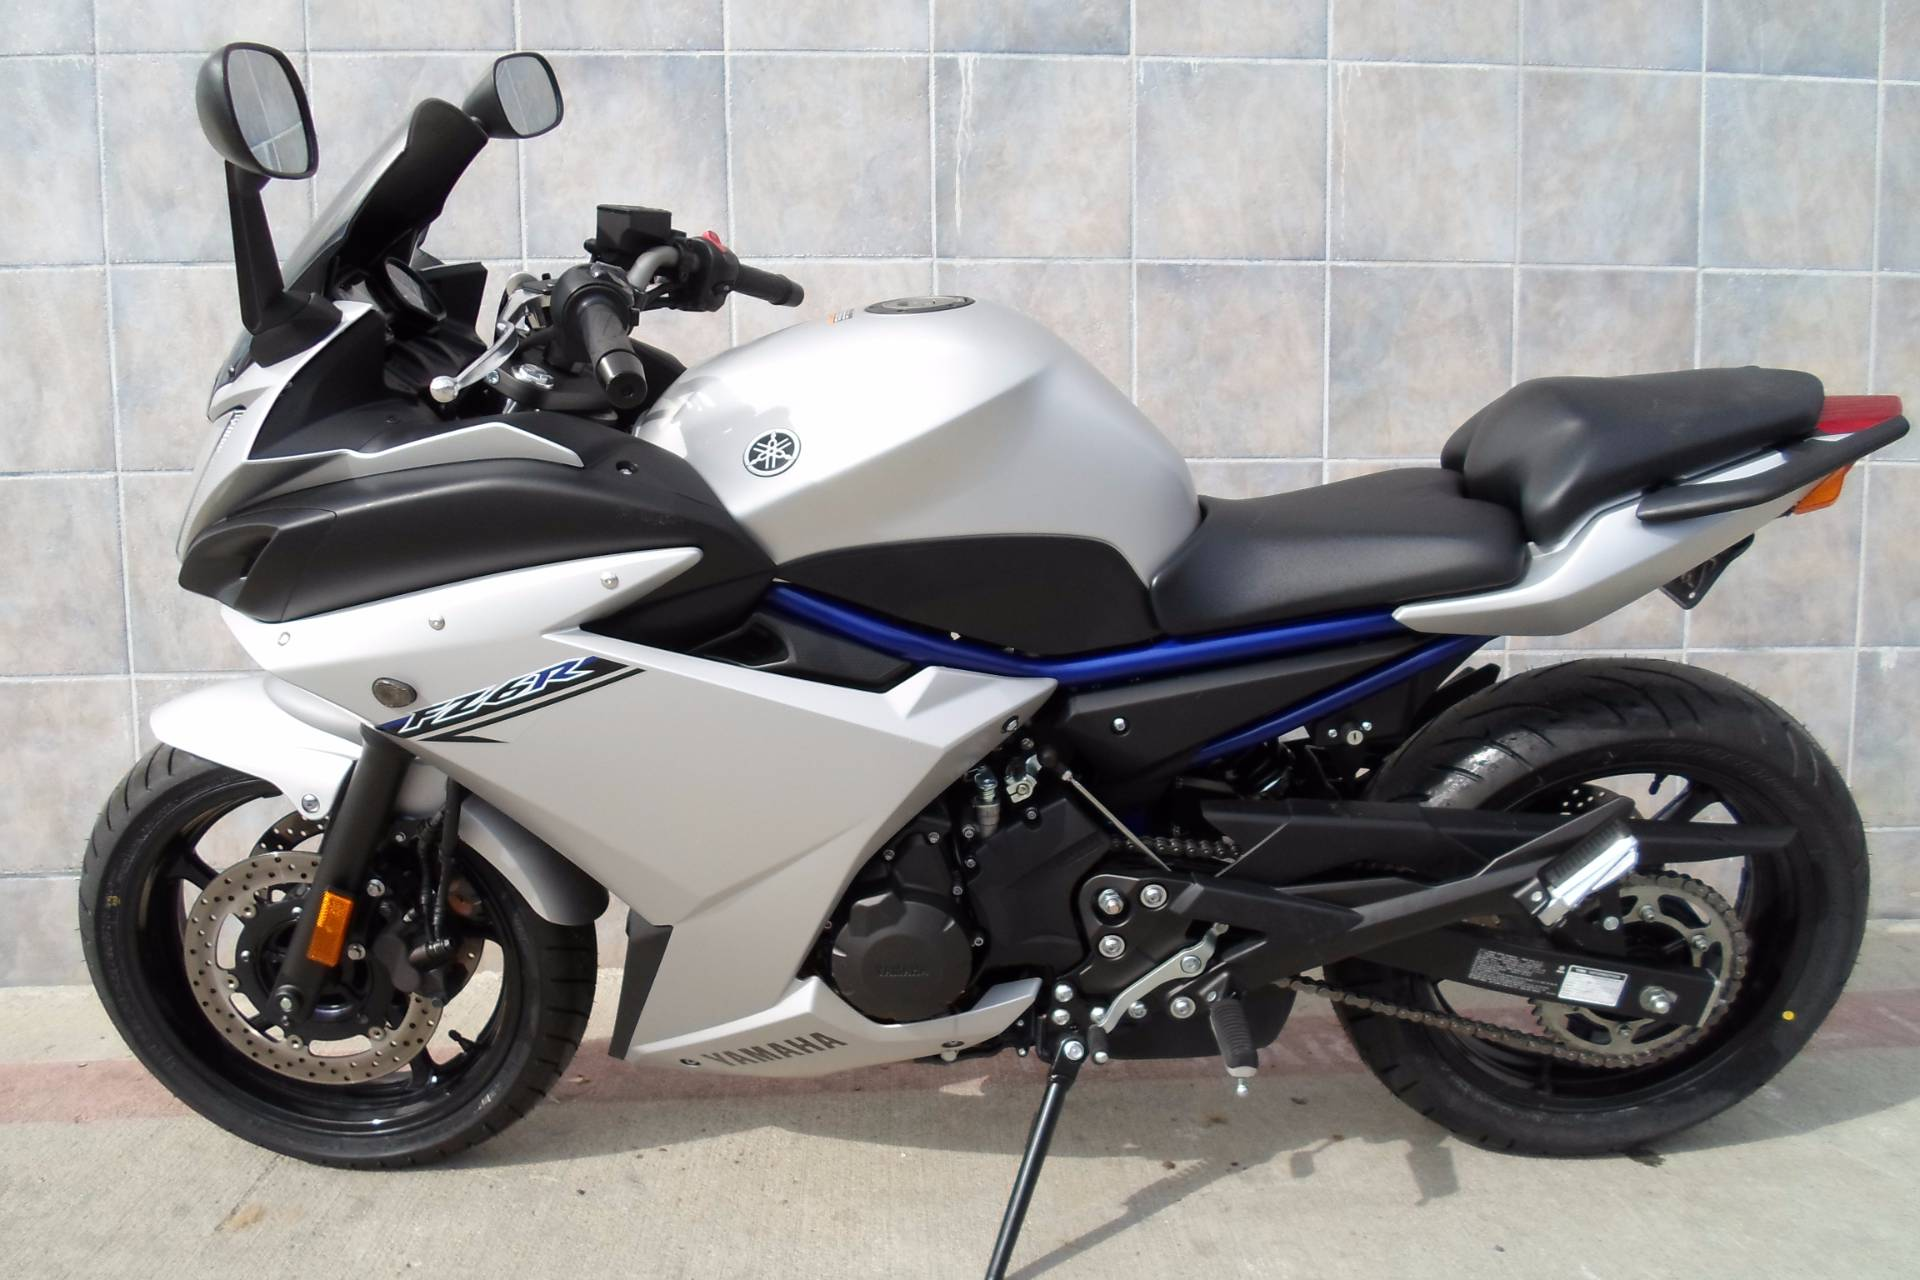 Used 2017 yamaha fz6r motorcycles in san marcos ca for San diego yamaha motorcycle dealers